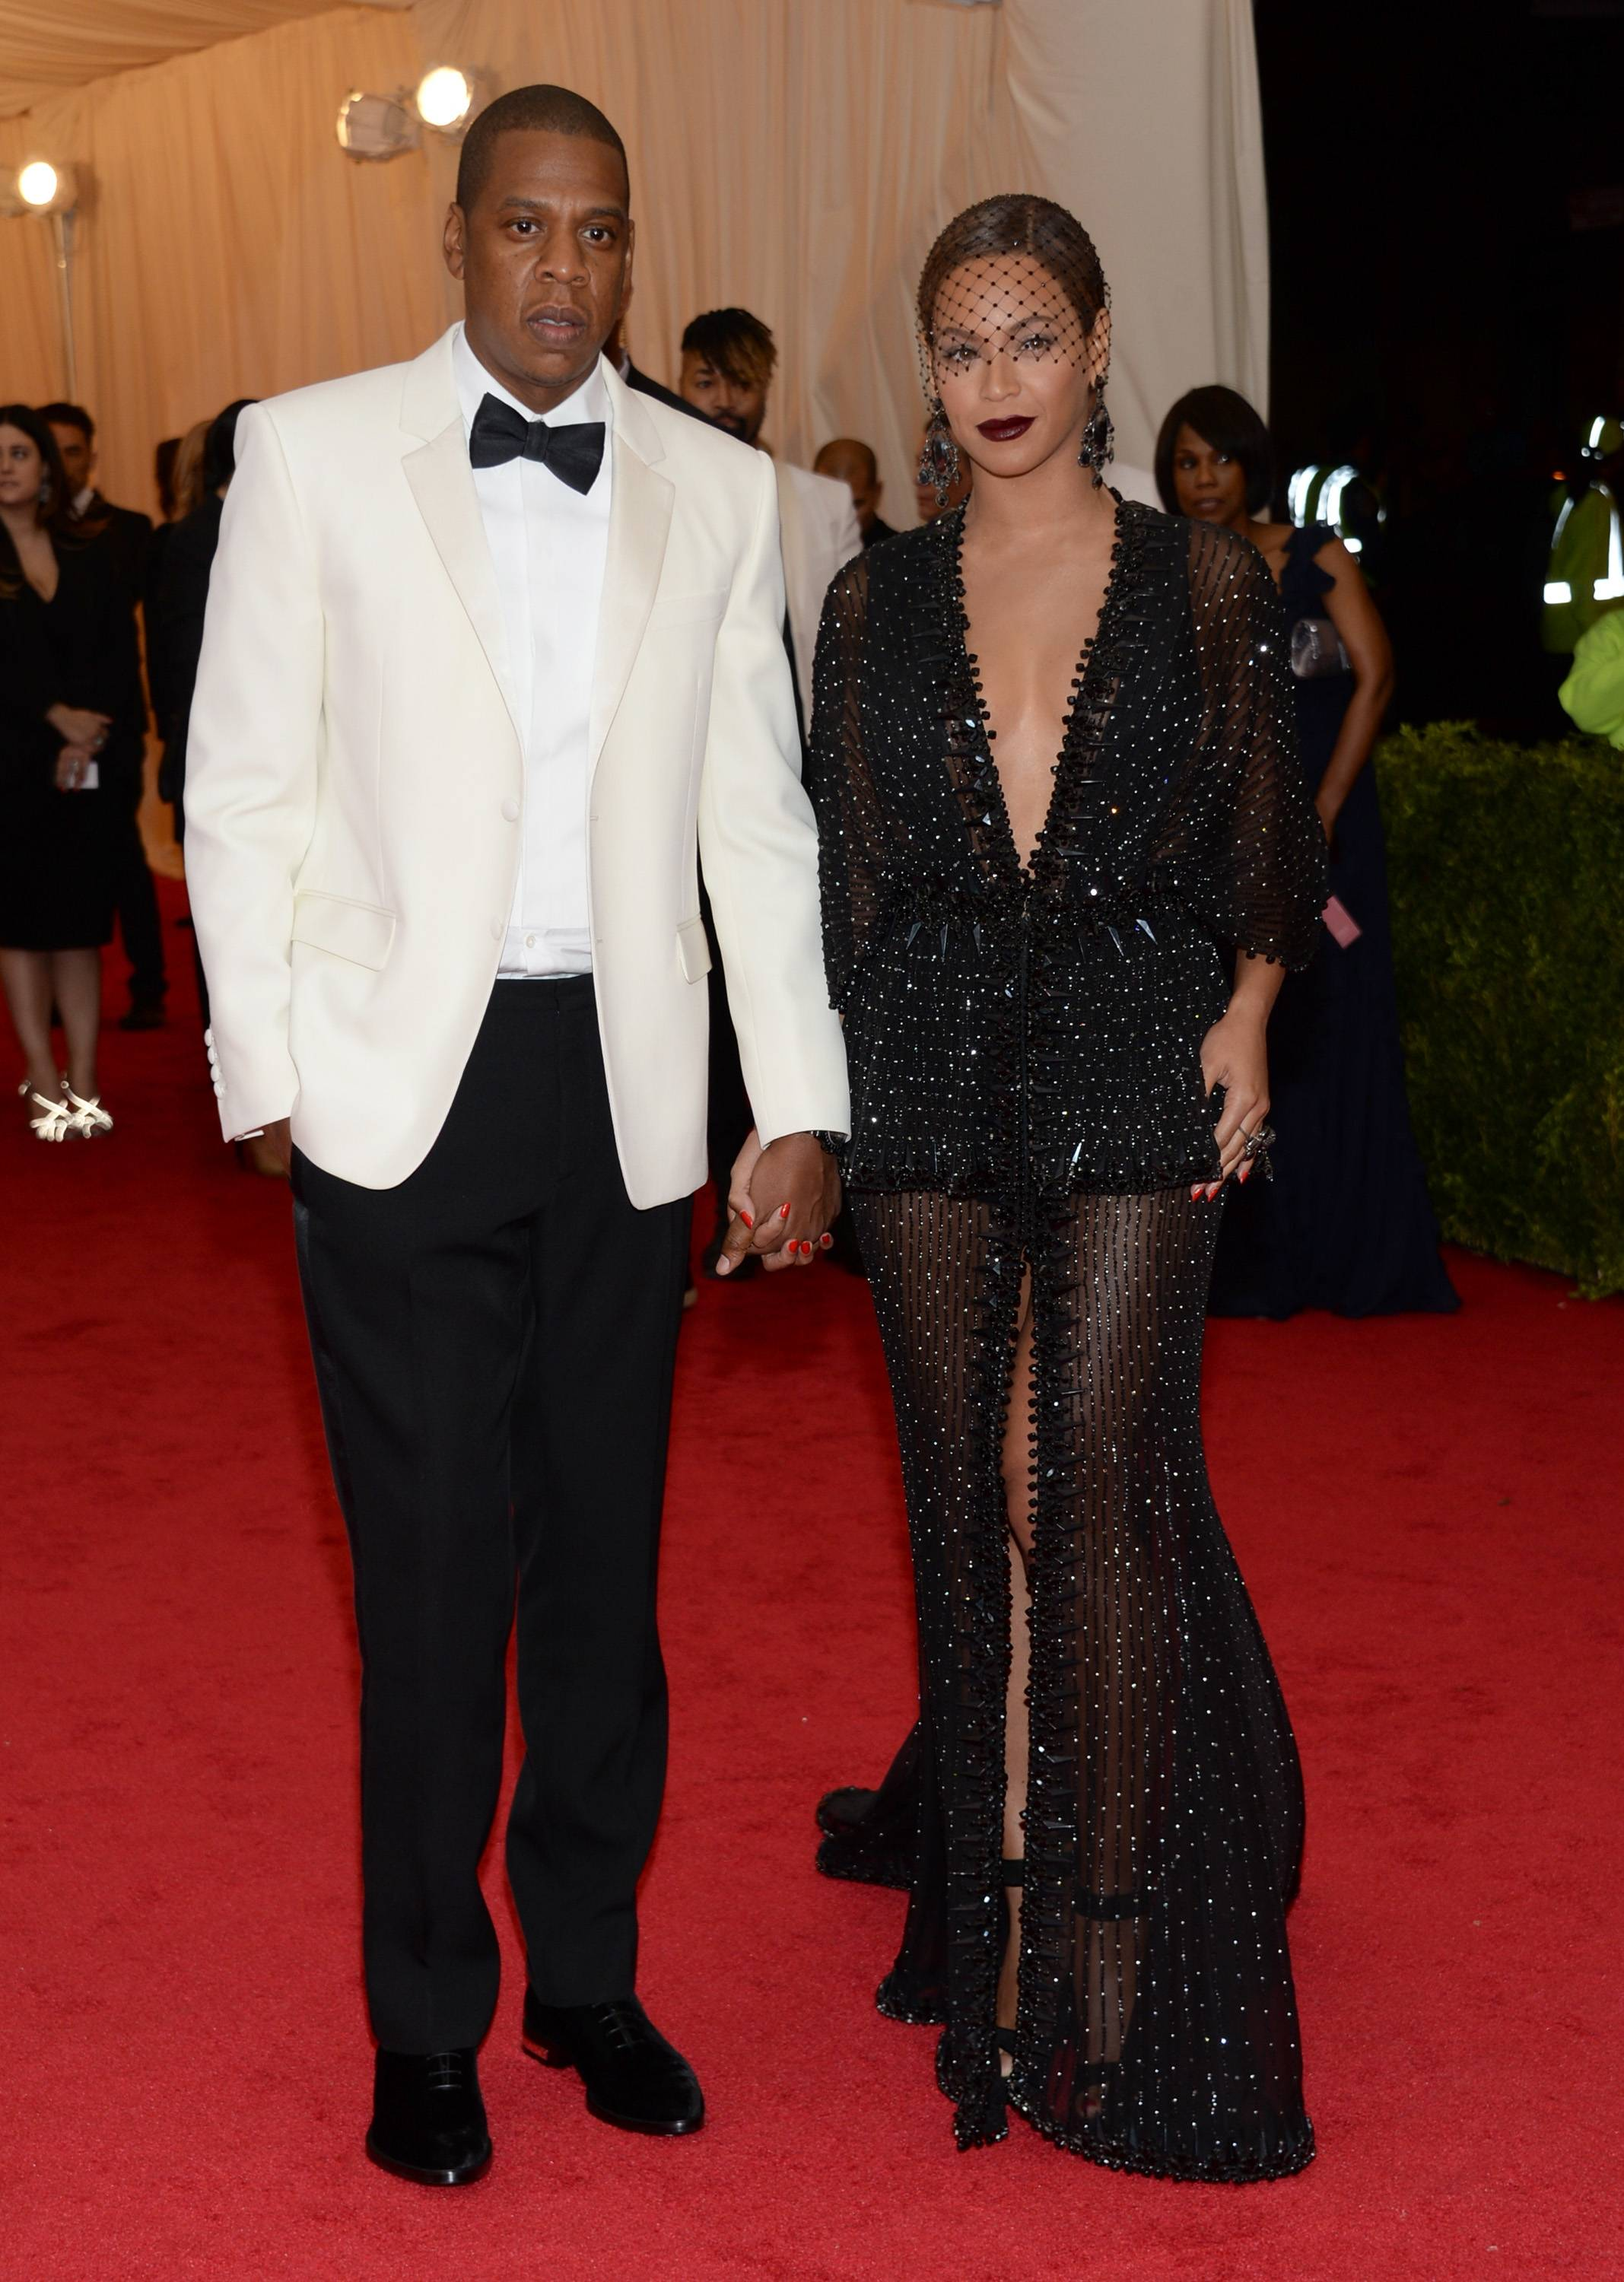 Jay Z and Beyonce sparkled at The Metropolitan Museum of Art's Costume Institute benefit gala.